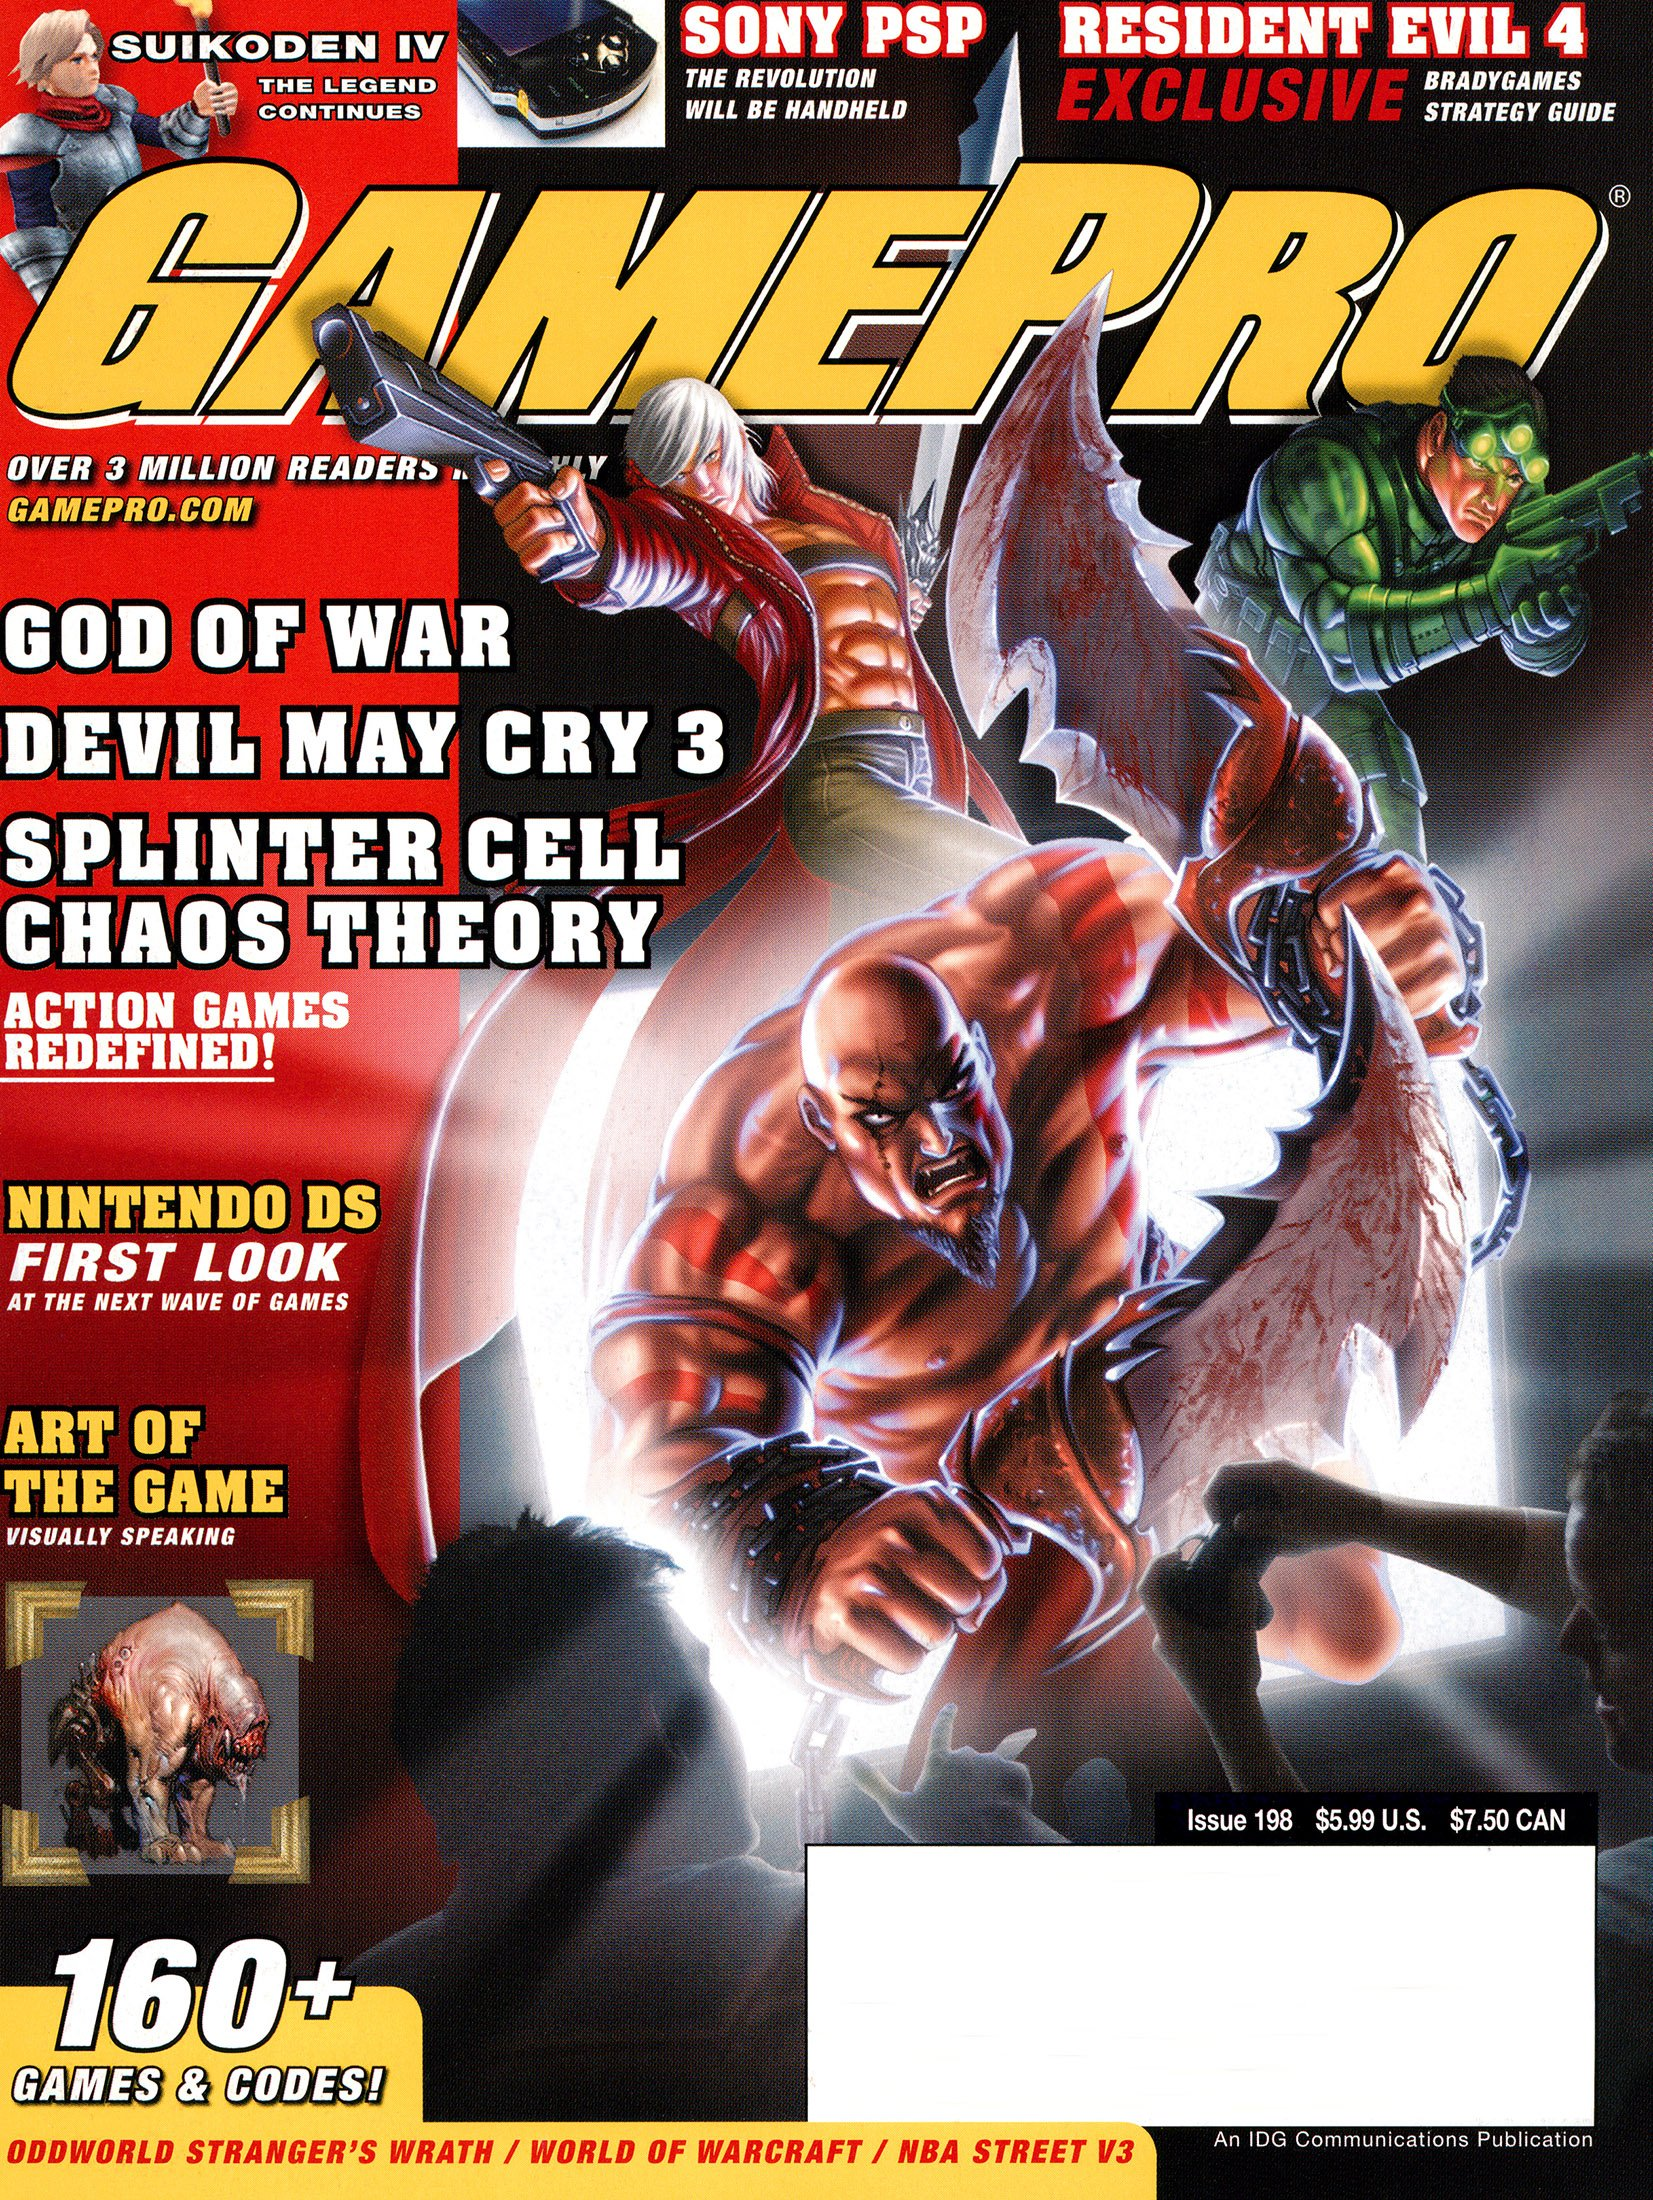 New Release - GamePro Issue 198 (March 2005)